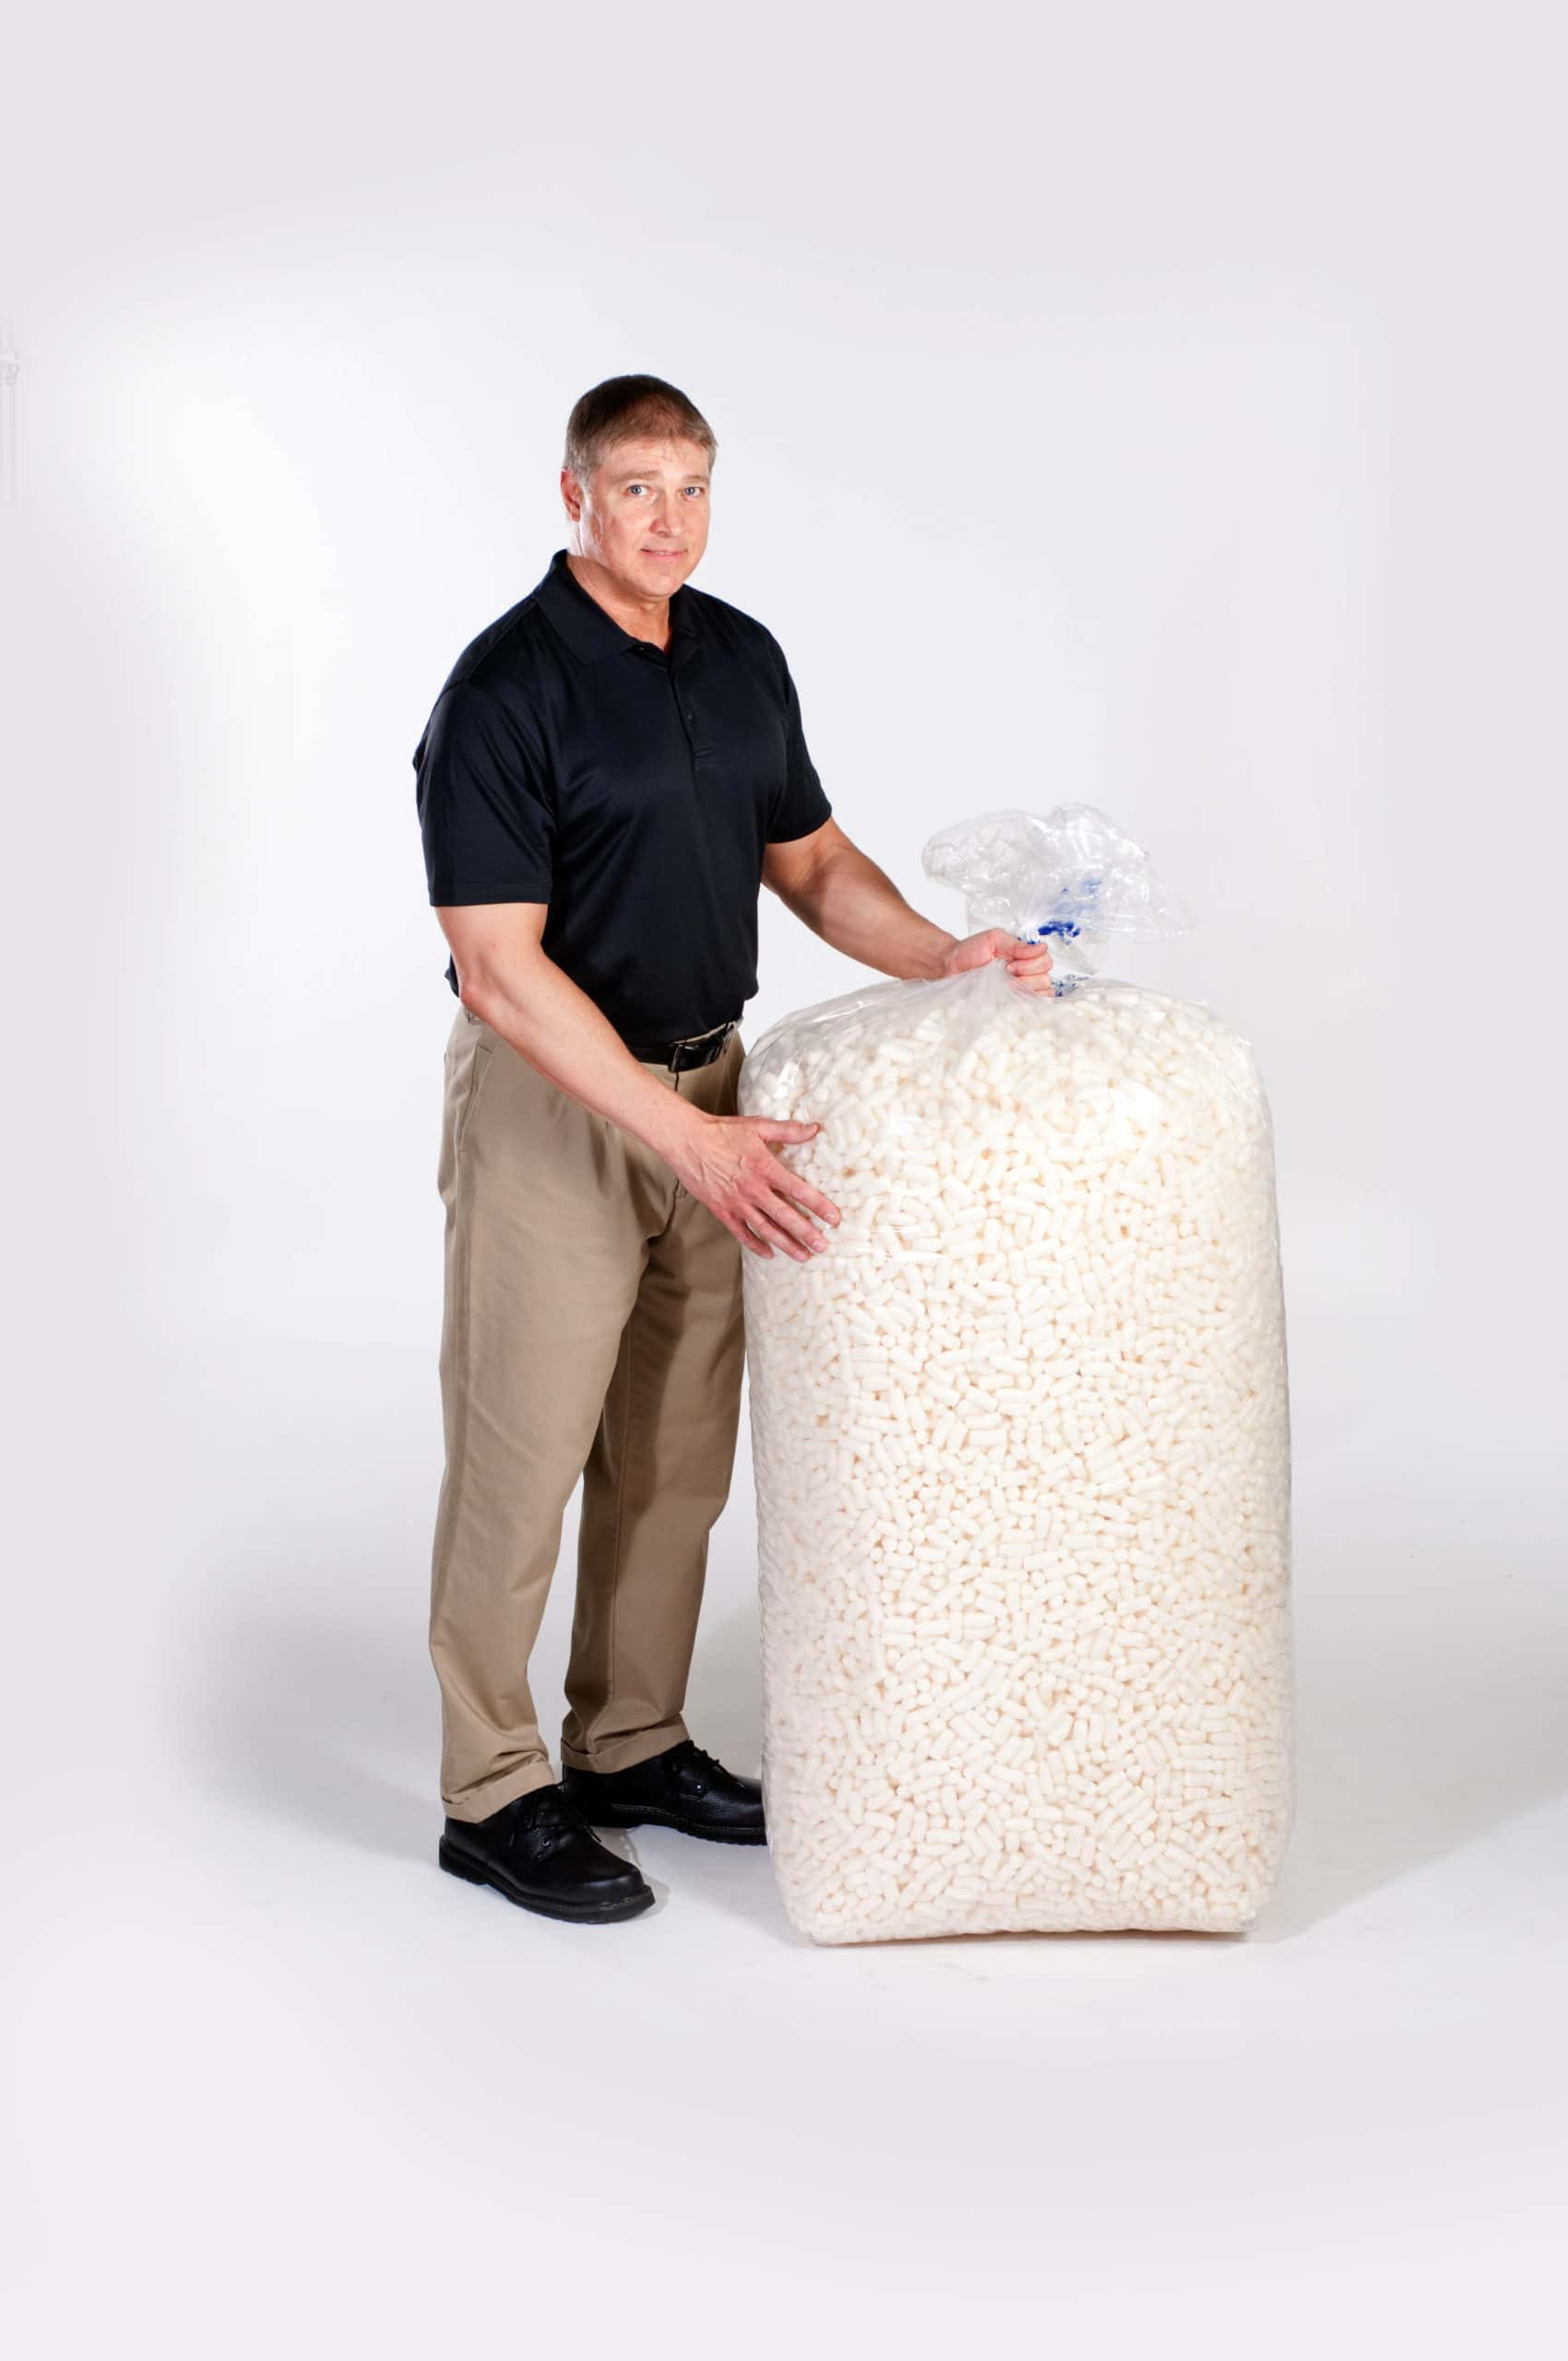 Packaging Peanuts Category Image